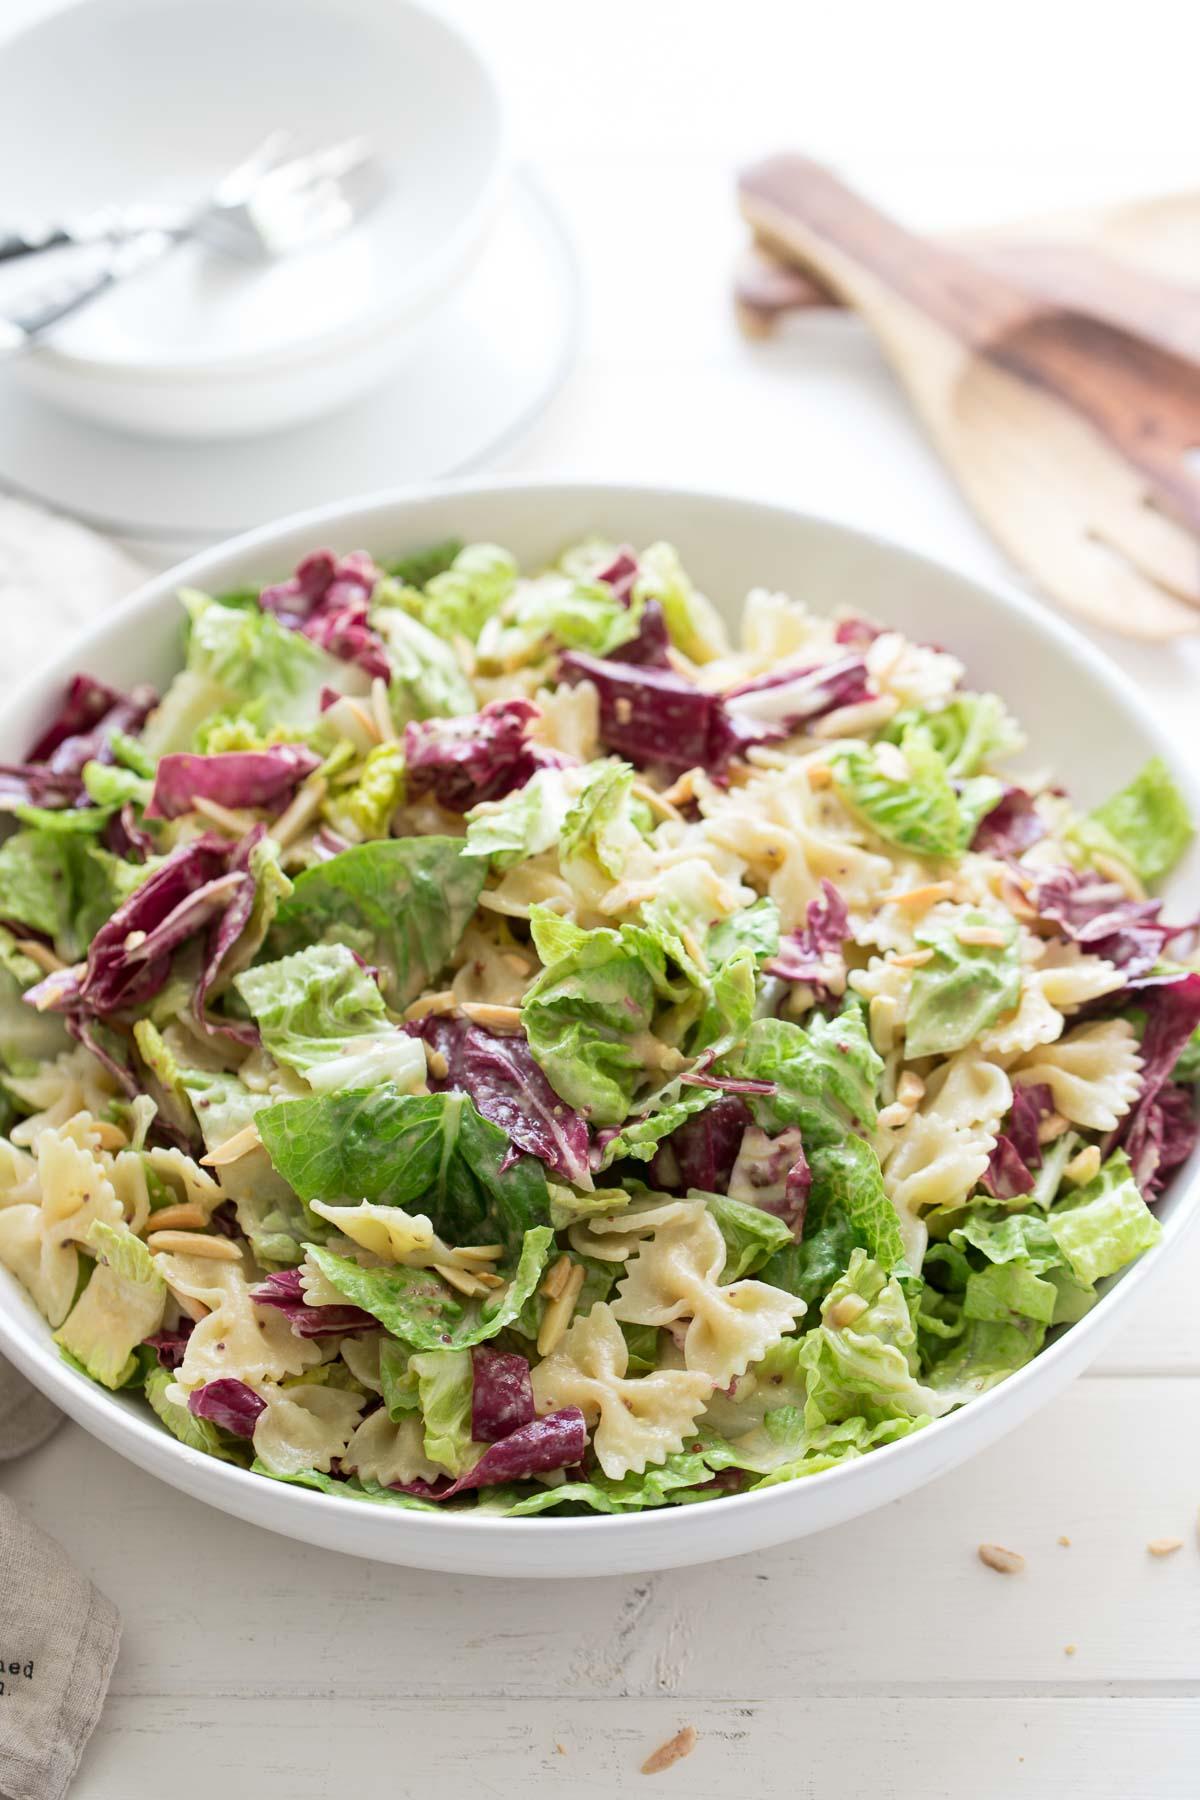 Caesar Pasta Salat with radicchio, almonds, tahini dressing (vegan)